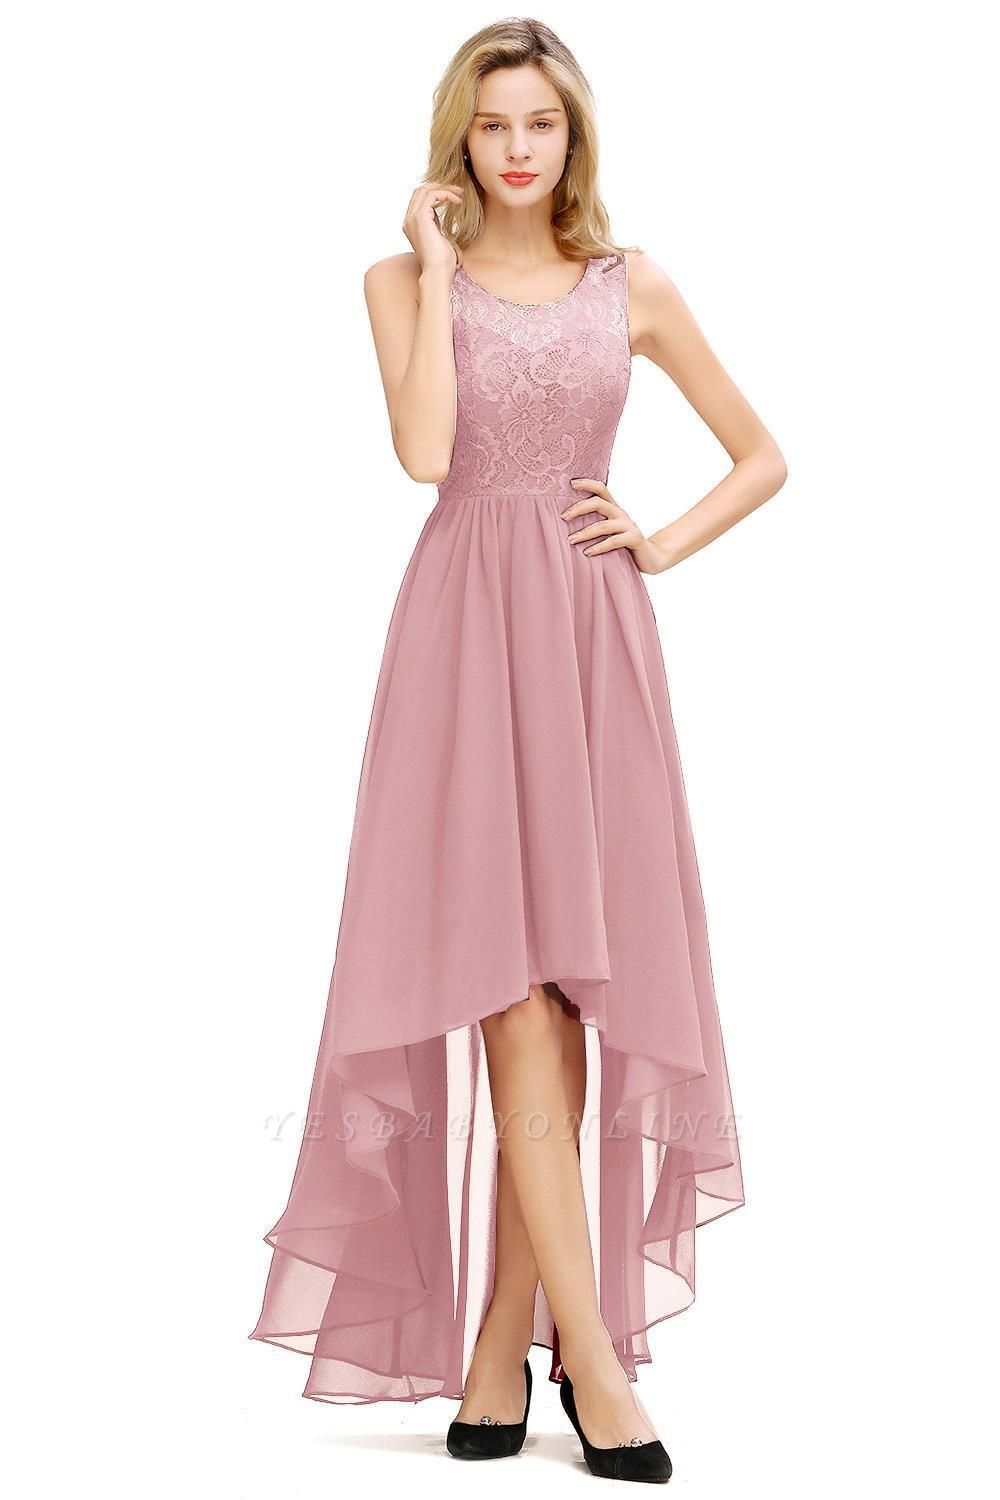 Jewel Sleeveless Hi-Lo Lace Chiffon Bridesmaid Dresses | Simple Wedding Guest Dresses